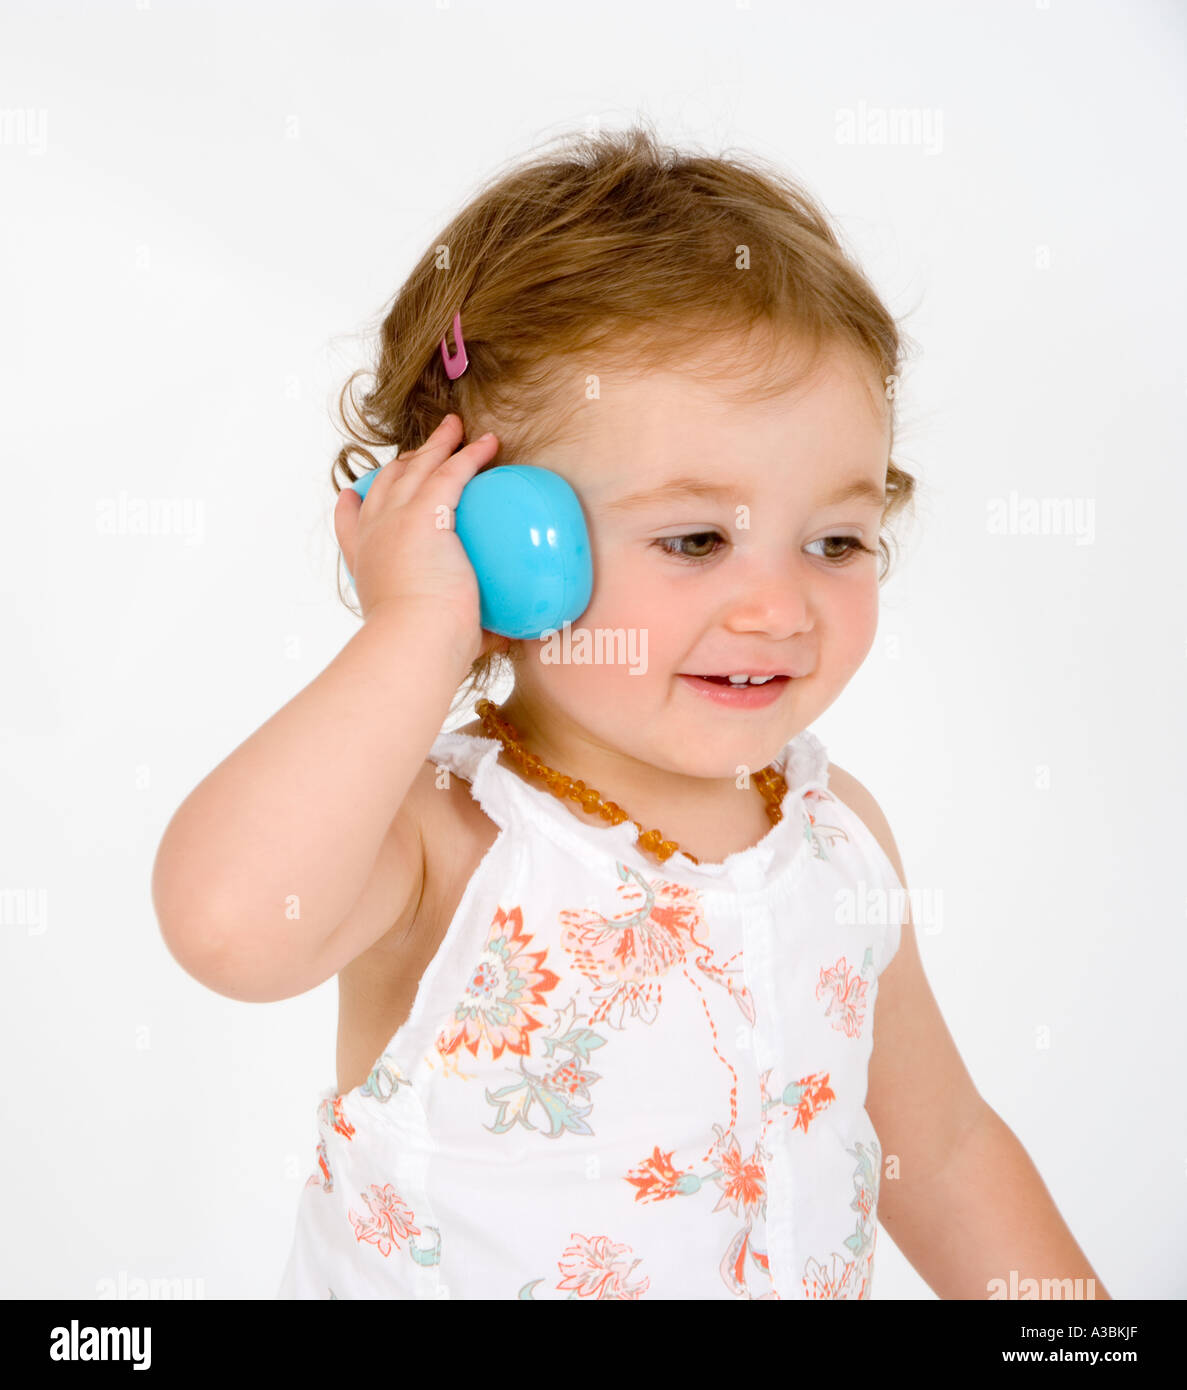 13a00eccb Female toddler (18-24 months) holding toy phone - Stock Image